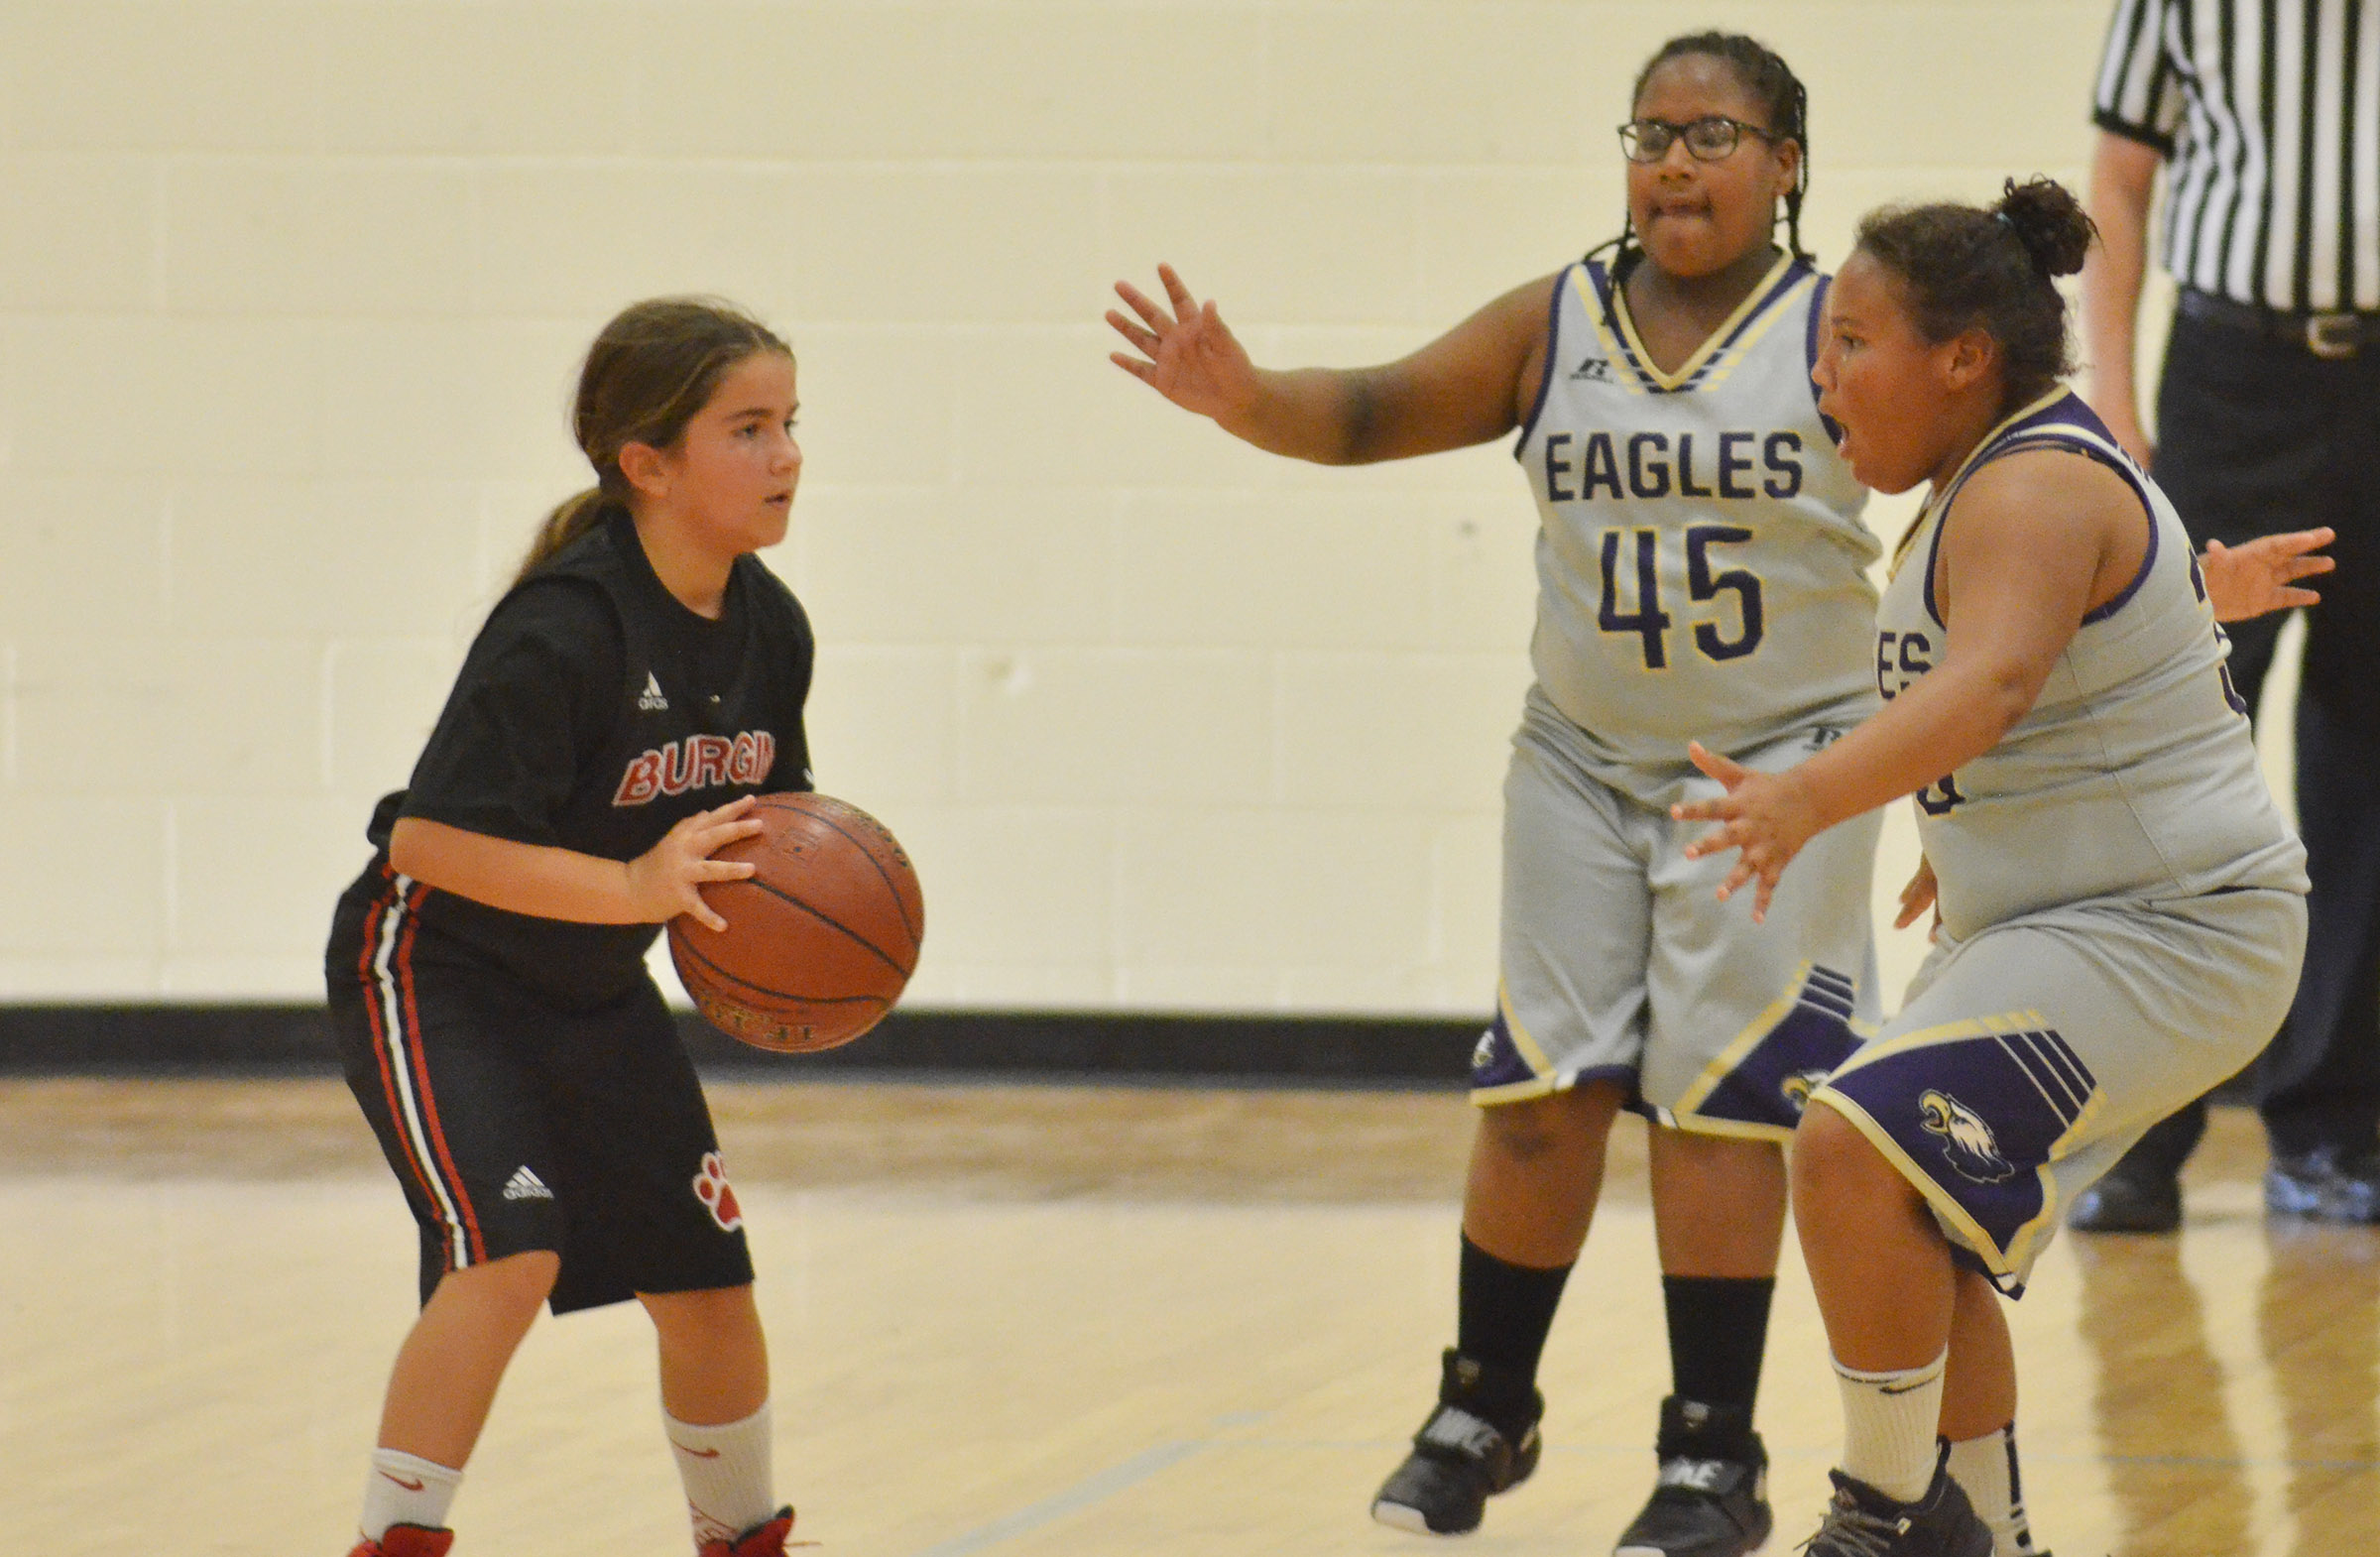 Campbellsville Elementary School fifth-graders KyAshia Mitchell, at left, and Dezarae Washington play defense.